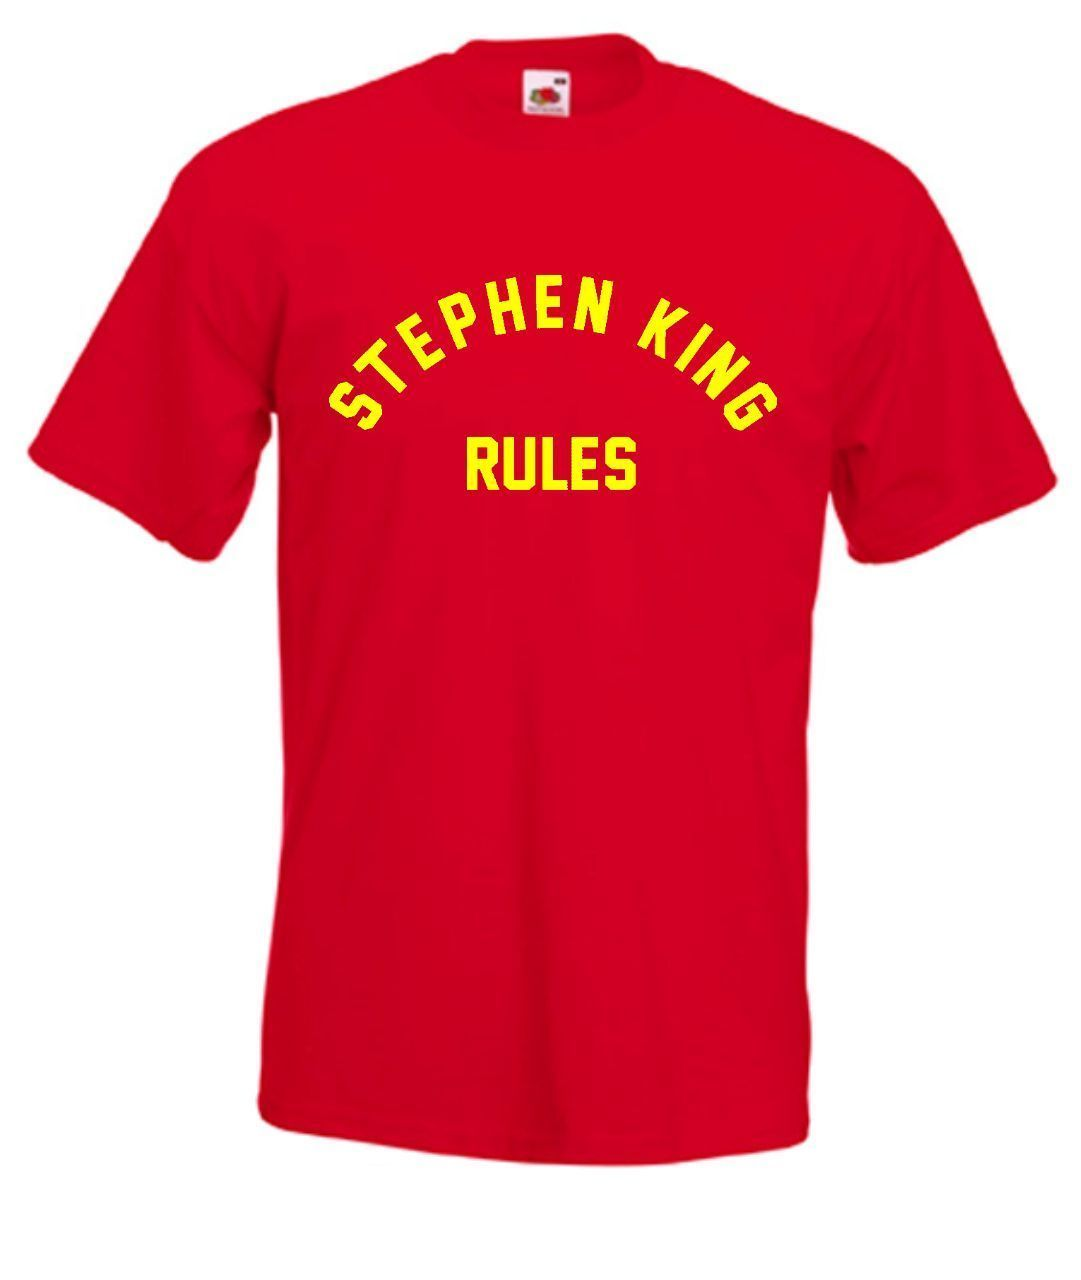 Stephen King Rules Monster Squad 80s Movie T Shirt Summer Men'S fashion Tee,Comfortable t shirt,Casual Short Sleeve TEE